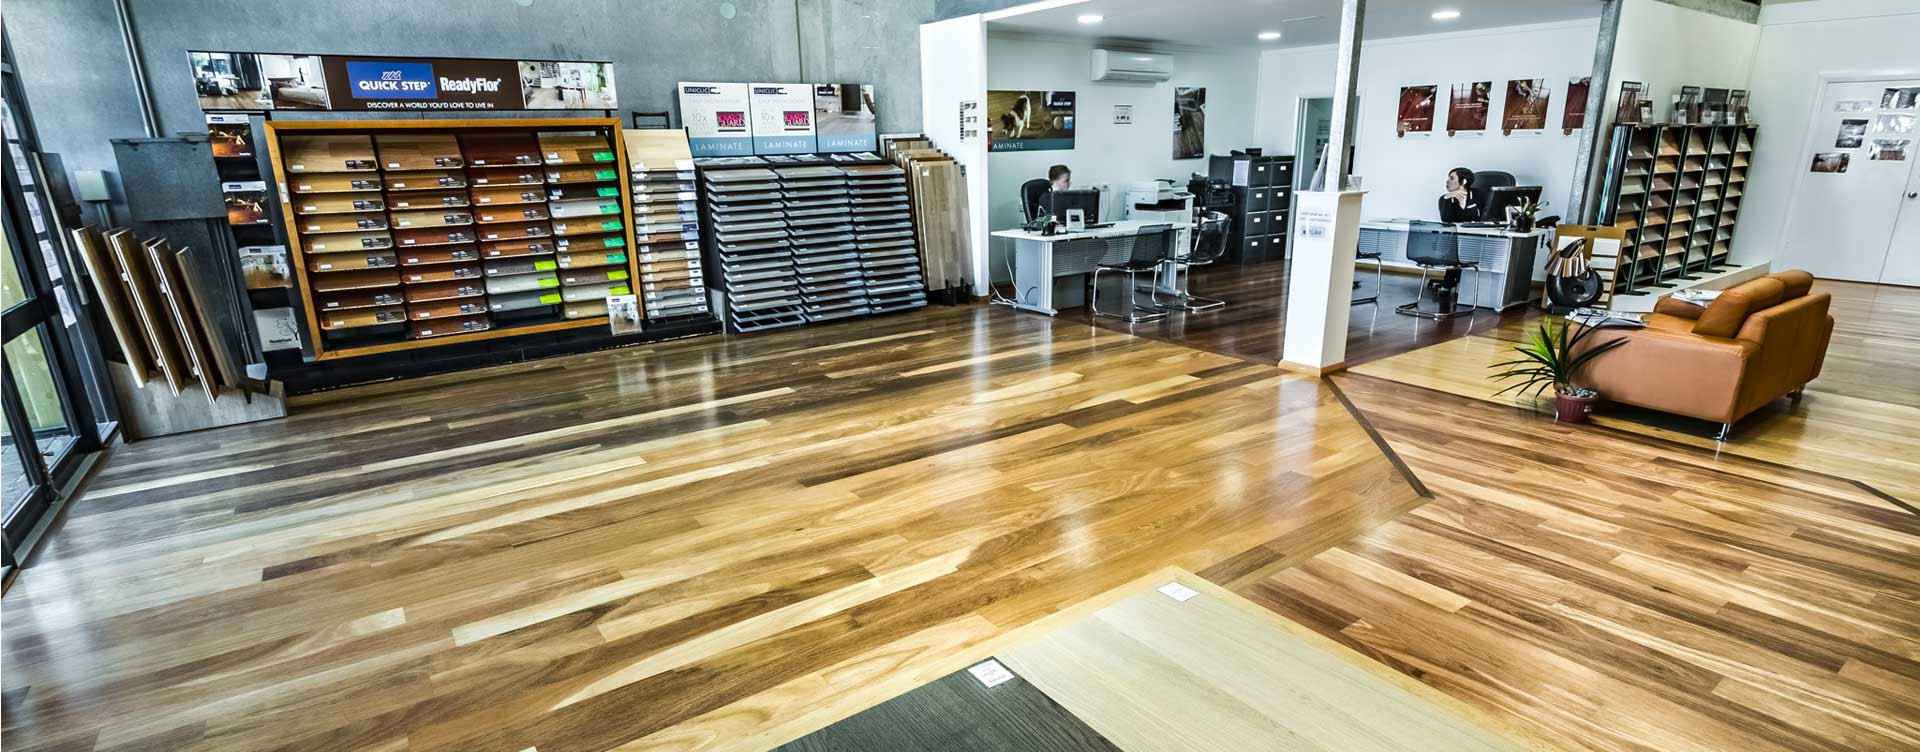 wide plank hardwood flooring of timber flooring perth coastal flooring wa quality wooden inside thats why they call us the home of fine wood floors